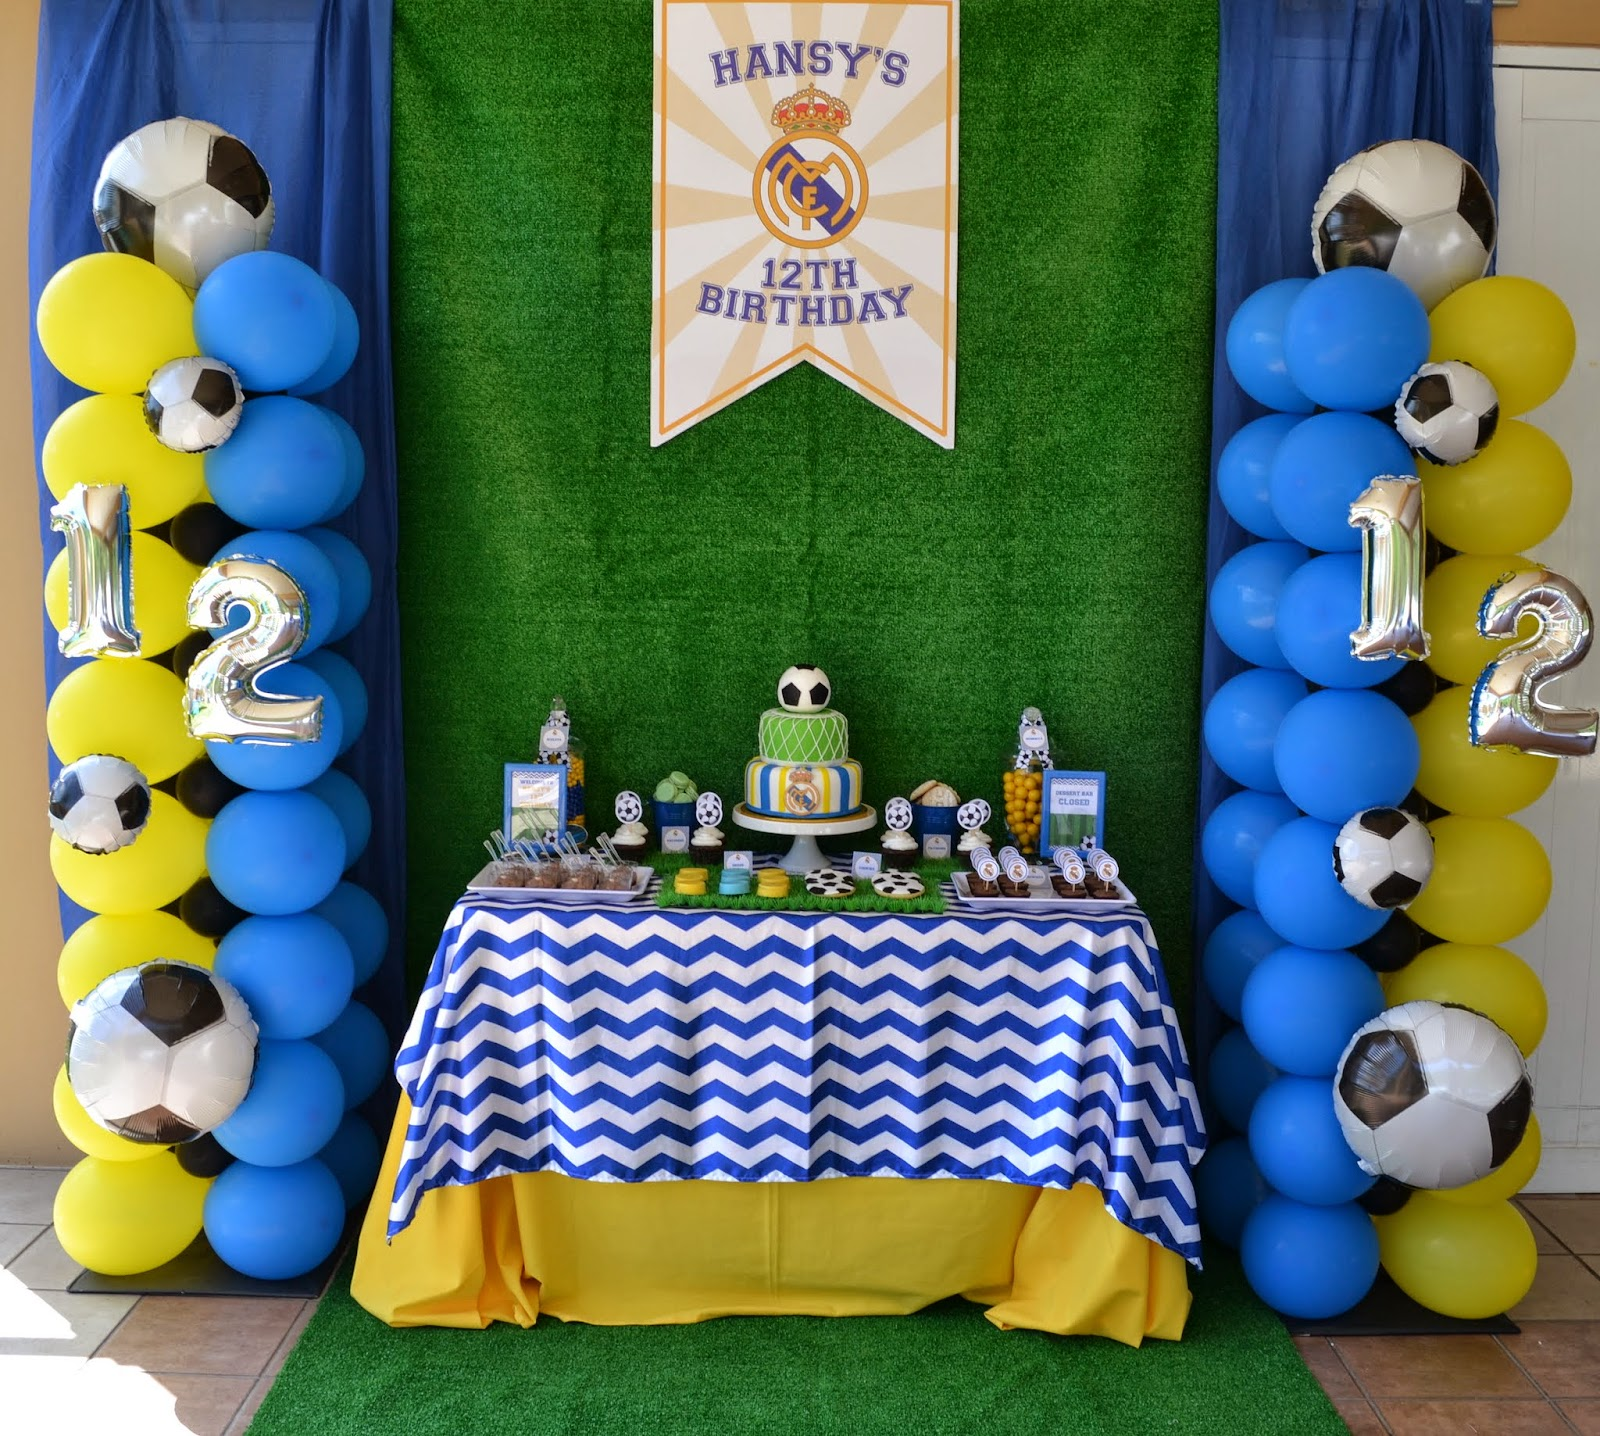 Partylicious events pr real madrid soccer party - Real madrid decorations ...